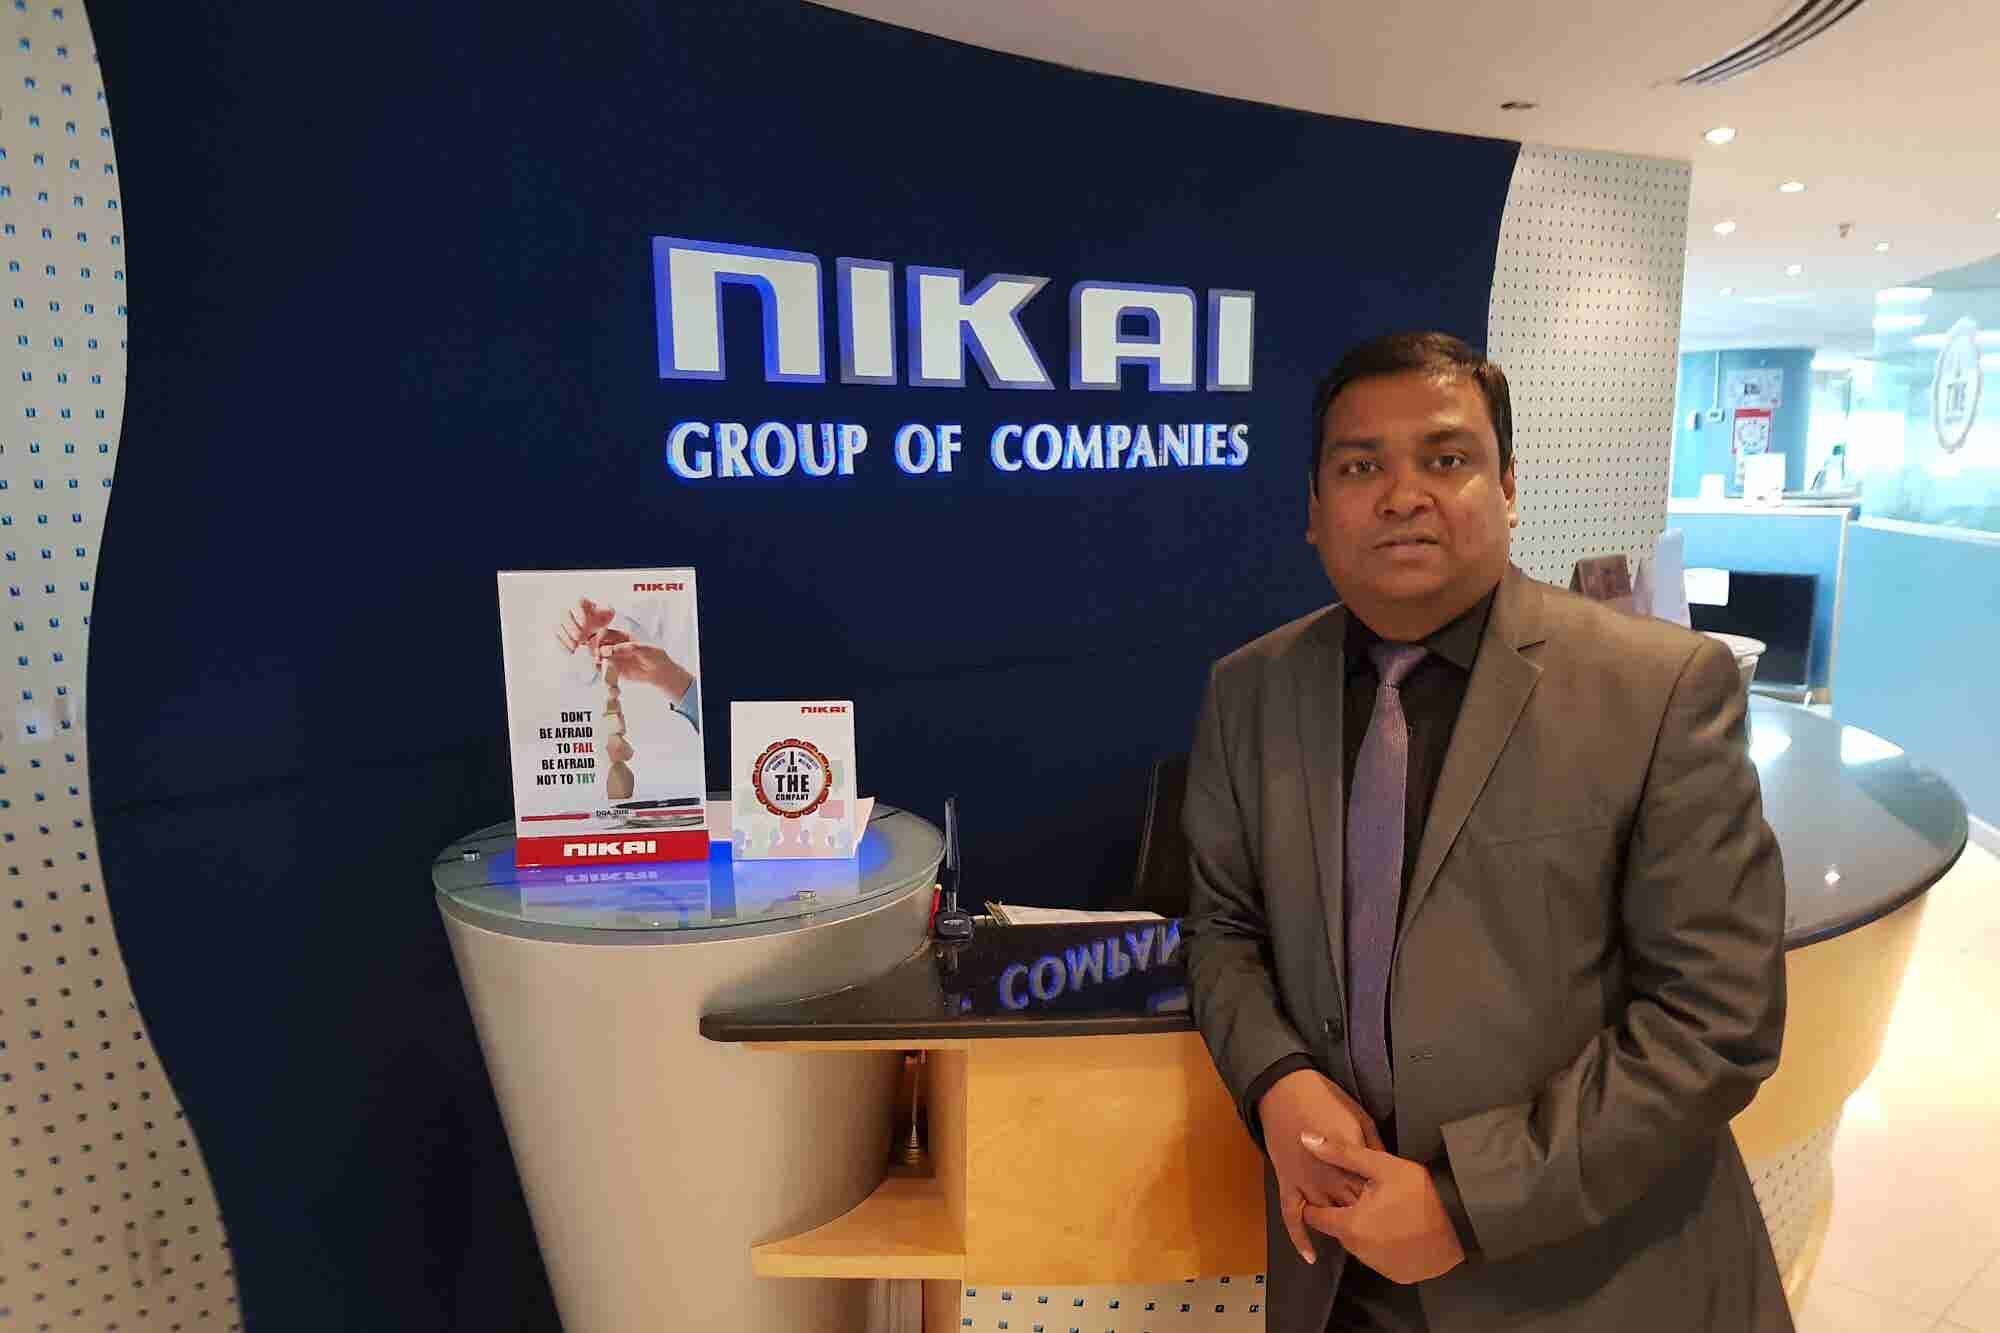 Once A Dubai Startup, NIKAI Group Now Supports Entrepreneurs With Dubai Startup Hub's Market Access Program